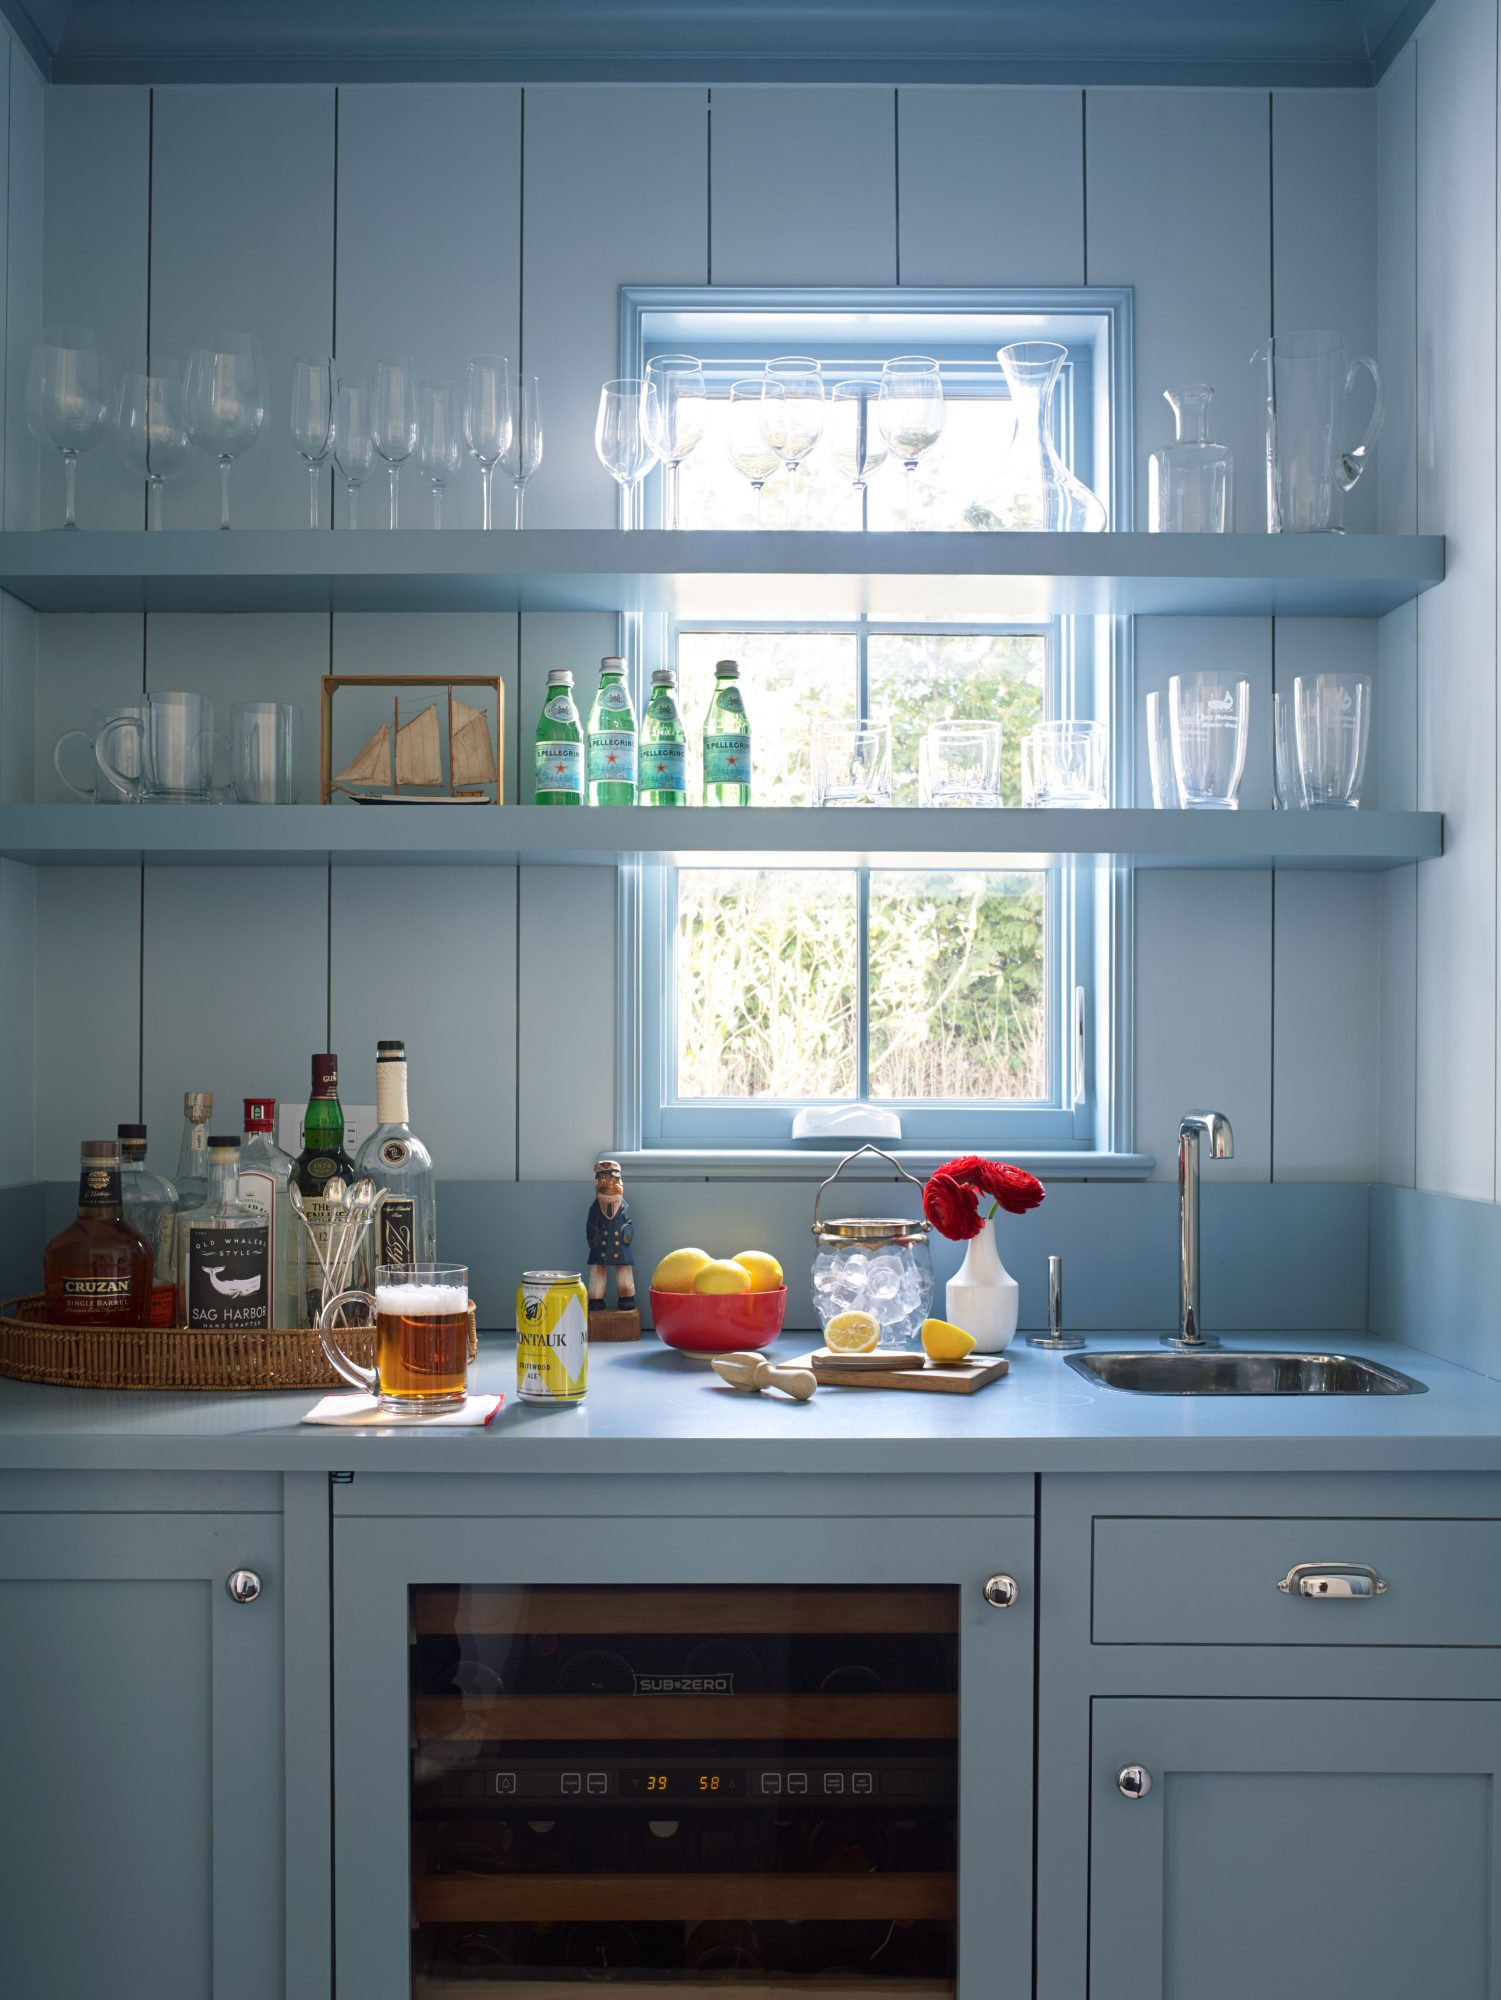 "Get the Blues: Wall paneling in Yarmouth Blue and cabinetry and shelving in Jamestown Blue, both by Benjamin Moore                                       Transform your home's pass-through spaces into linger-worthy stops by painting them unexpected hues. The milky blue on the shelves and cabinets of this built-in wet bar, plus the powder blue-painted shiplap, elevate this hallway alcove from a practical service area to a ""little jewel of a space to be in,"" notes architect Bill Beeton."